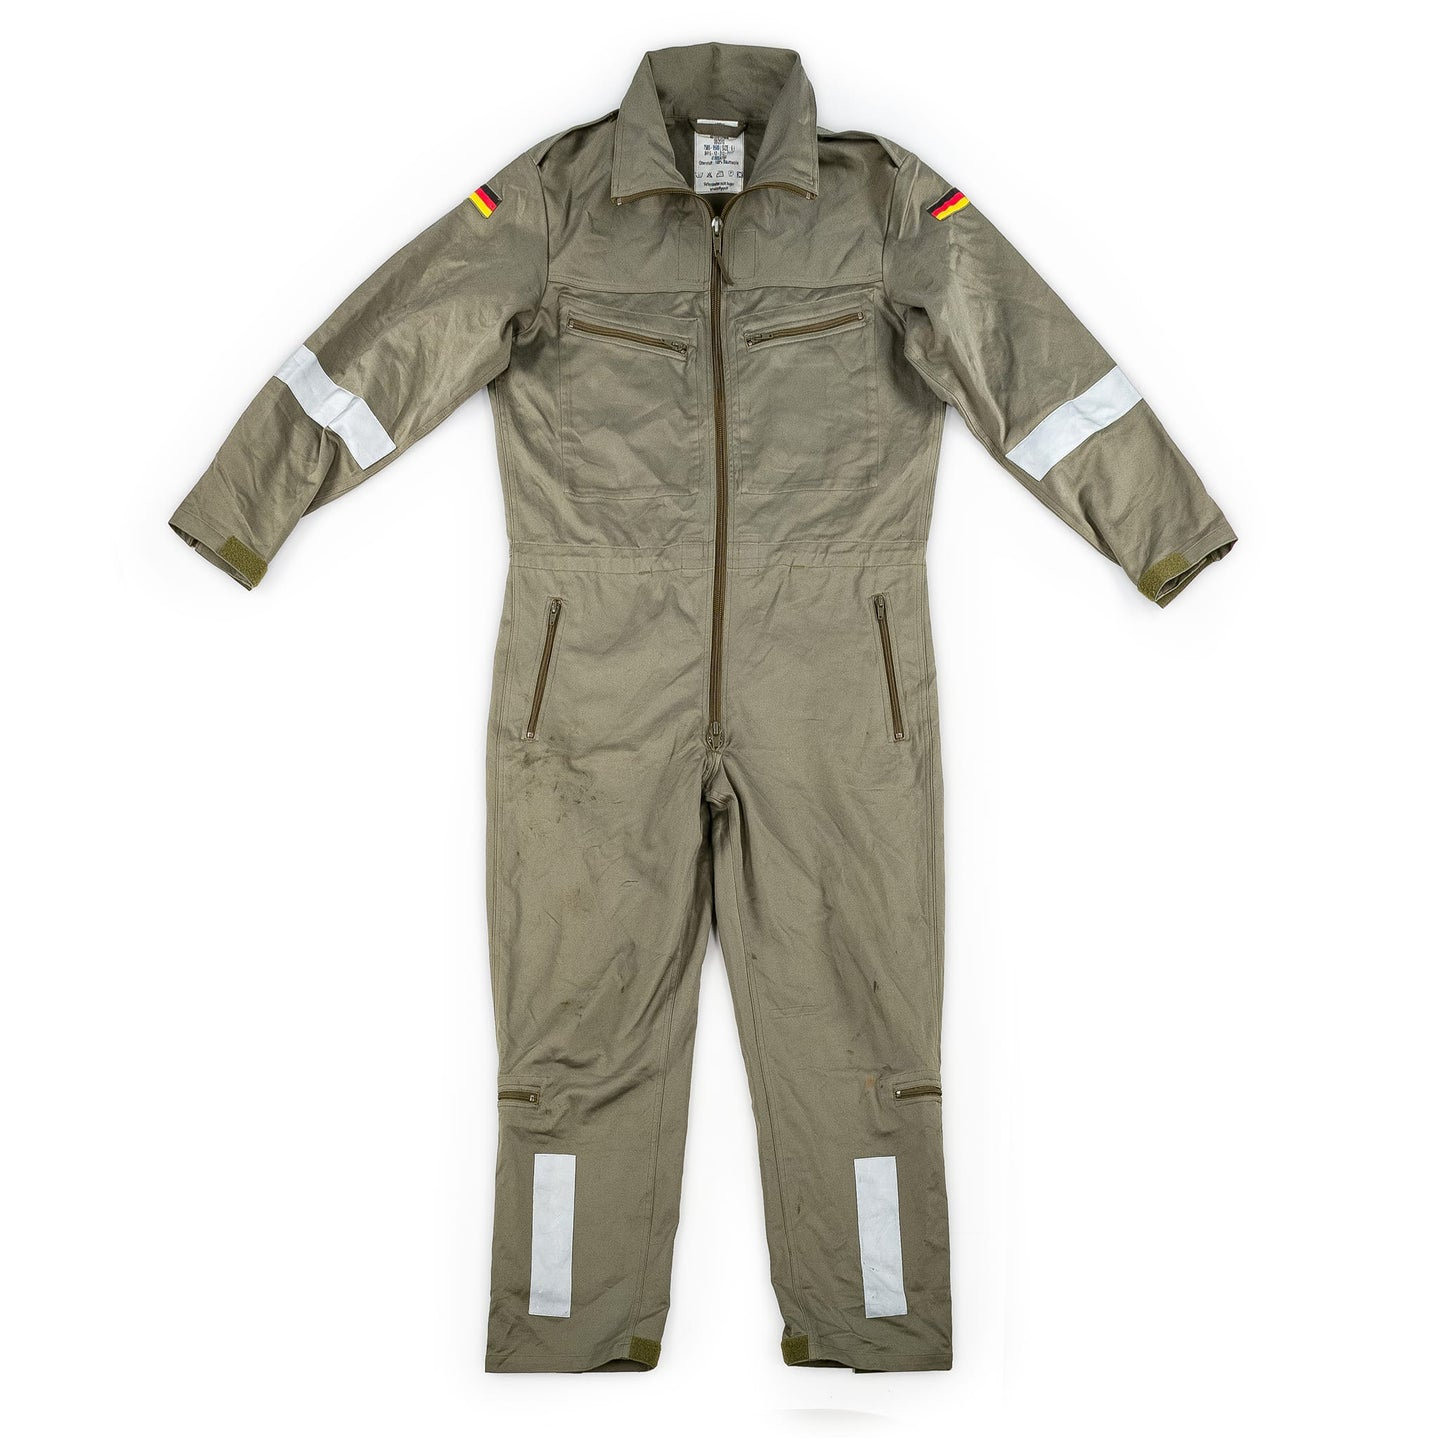 Bundeswehr Engineer's Coverall Suit